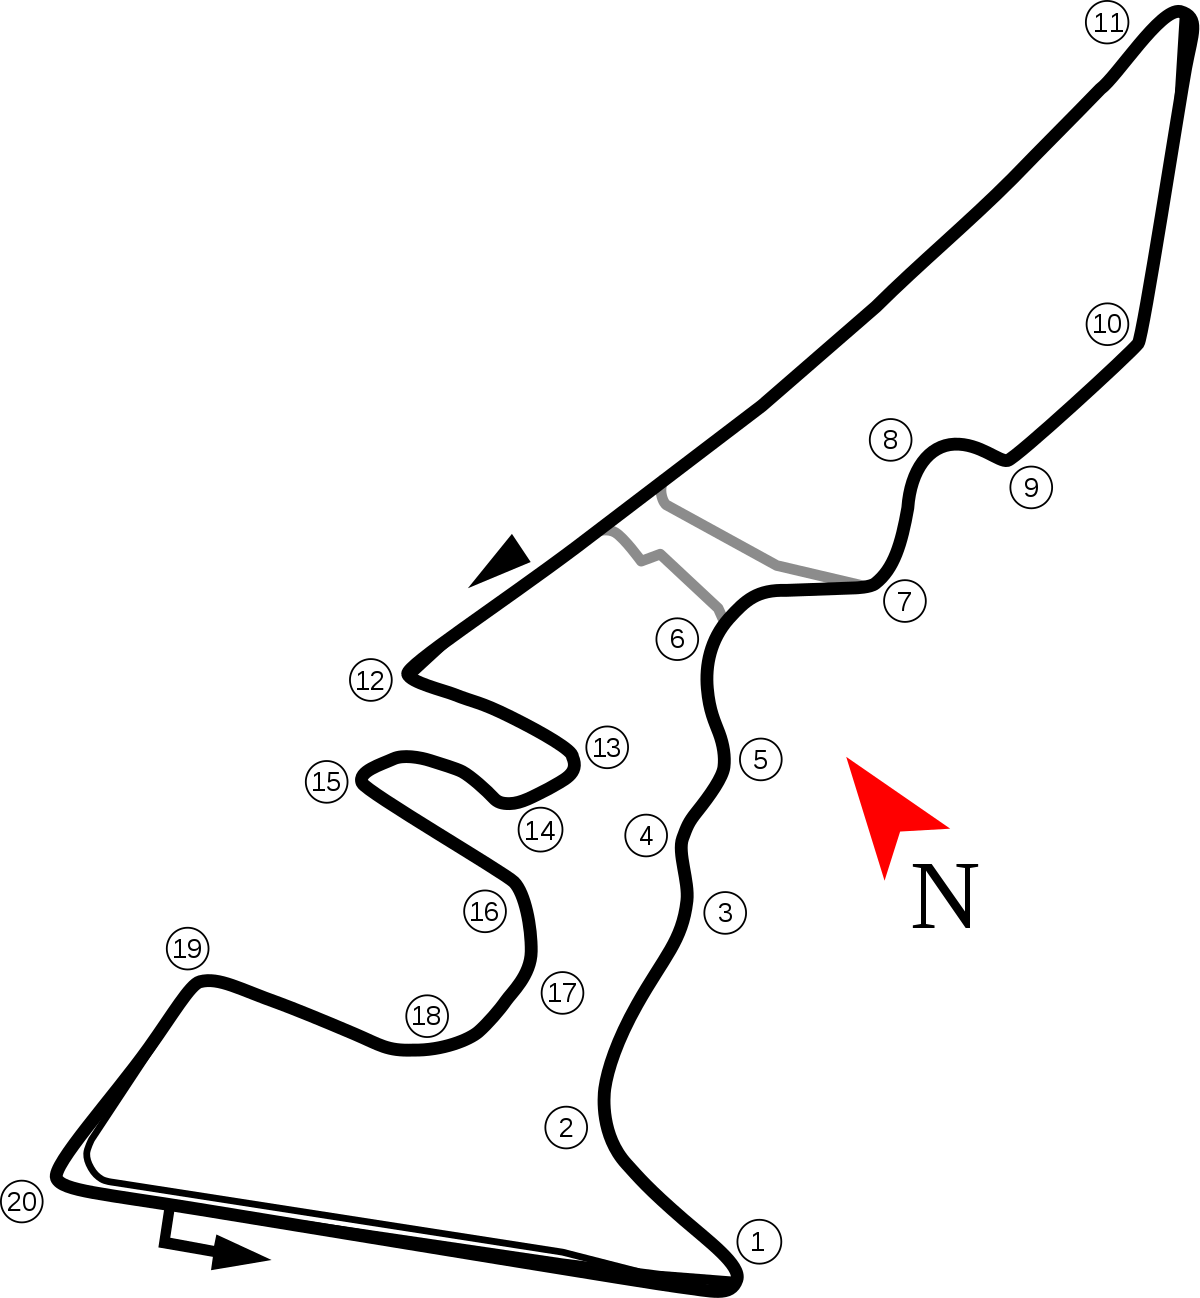 Pcars_Circuit_of_the_Americas_GP.png